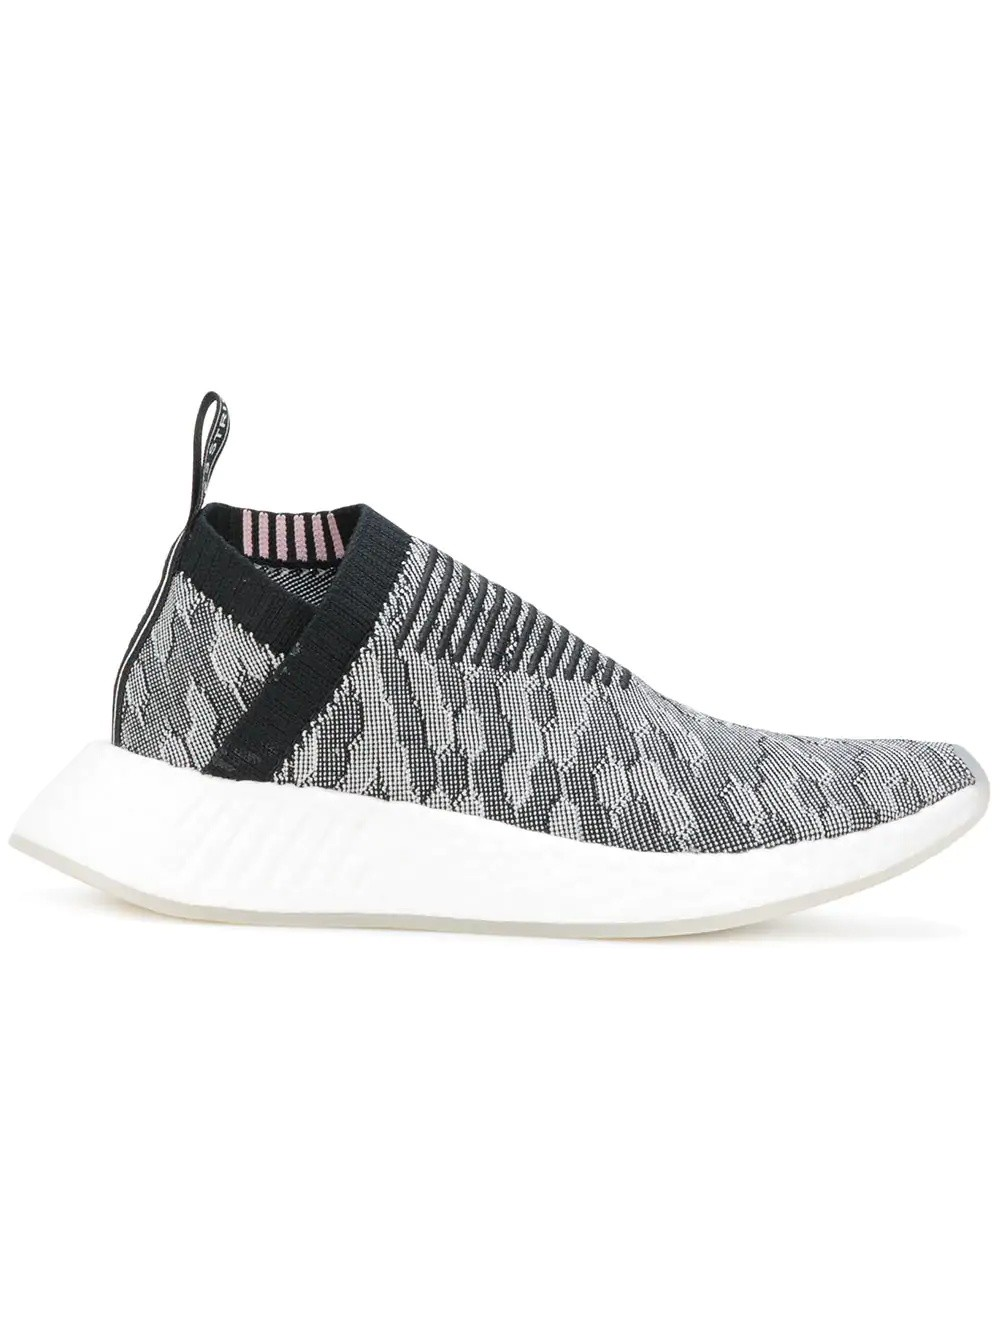 Adidas By9312 Homme NMD Cs2 PK Fonctionnement Chaussures Noir Rose